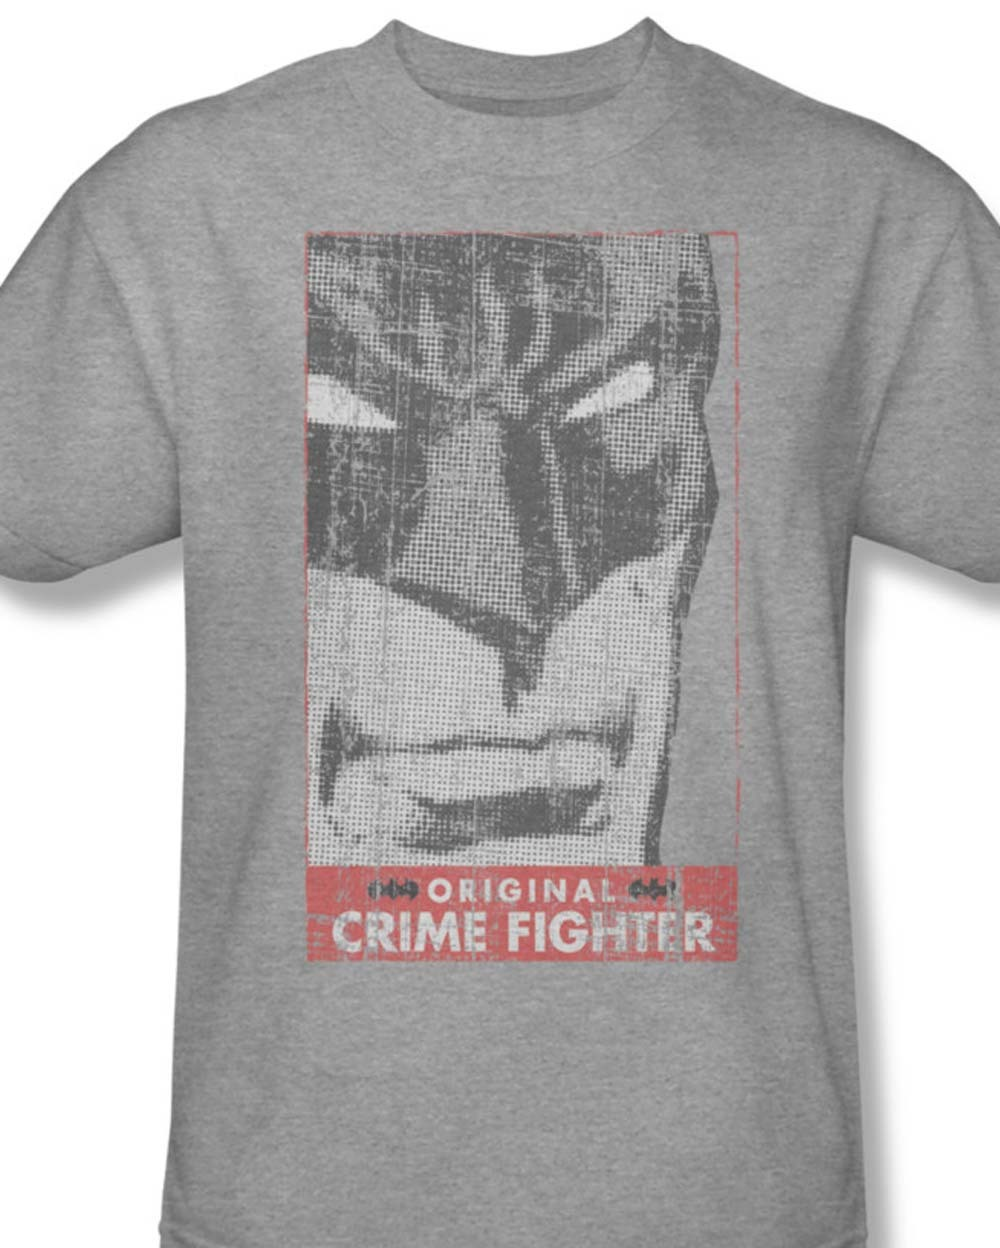 Bm1633 at batman crime fighter classic gray dc tshirt